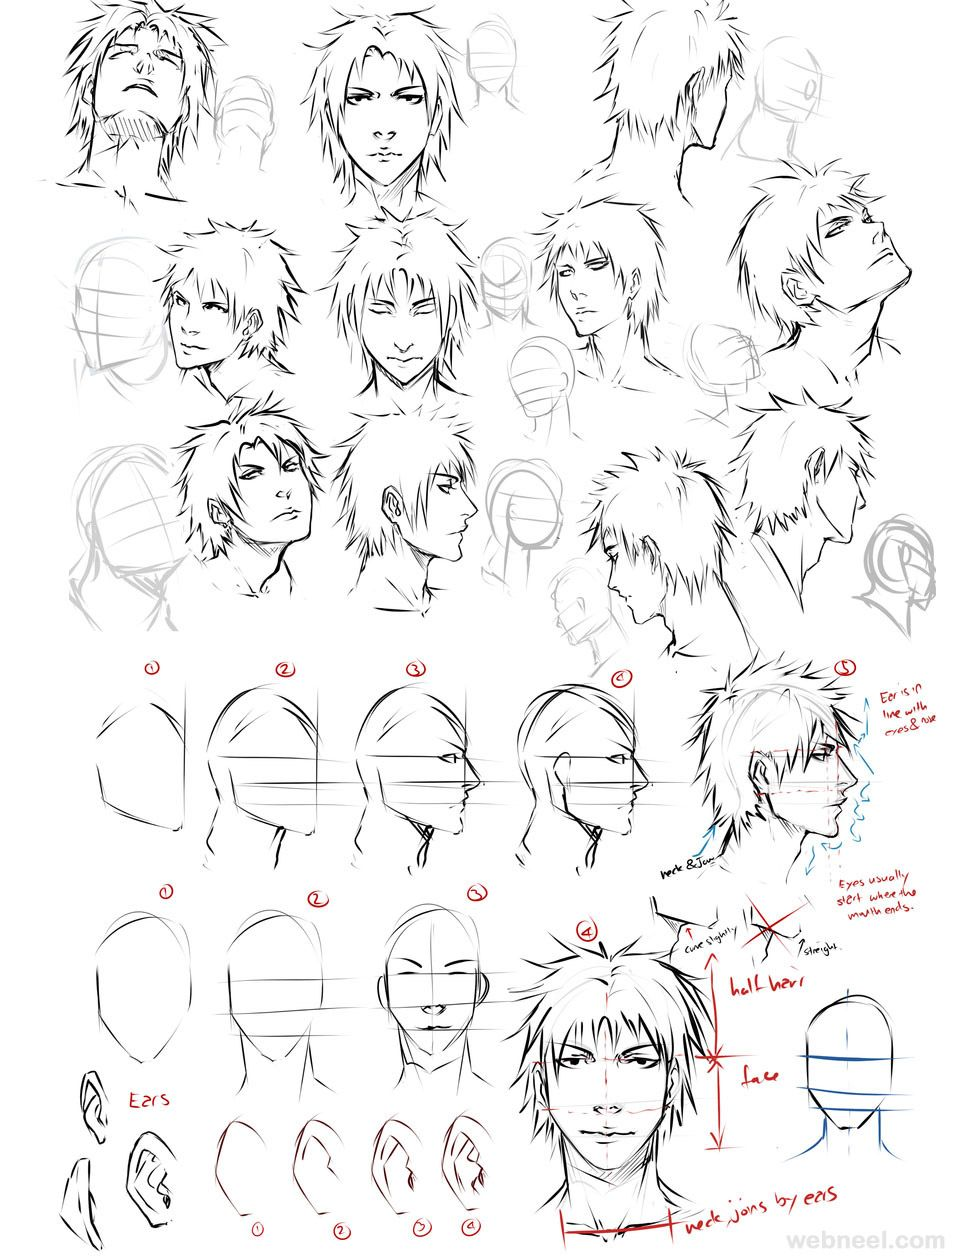 How To Draw Anime Tutorial With Beautiful Anime Character Drawings 13 Anime Drawing Male By Moni Face Drawing Anime Drawings Drawings